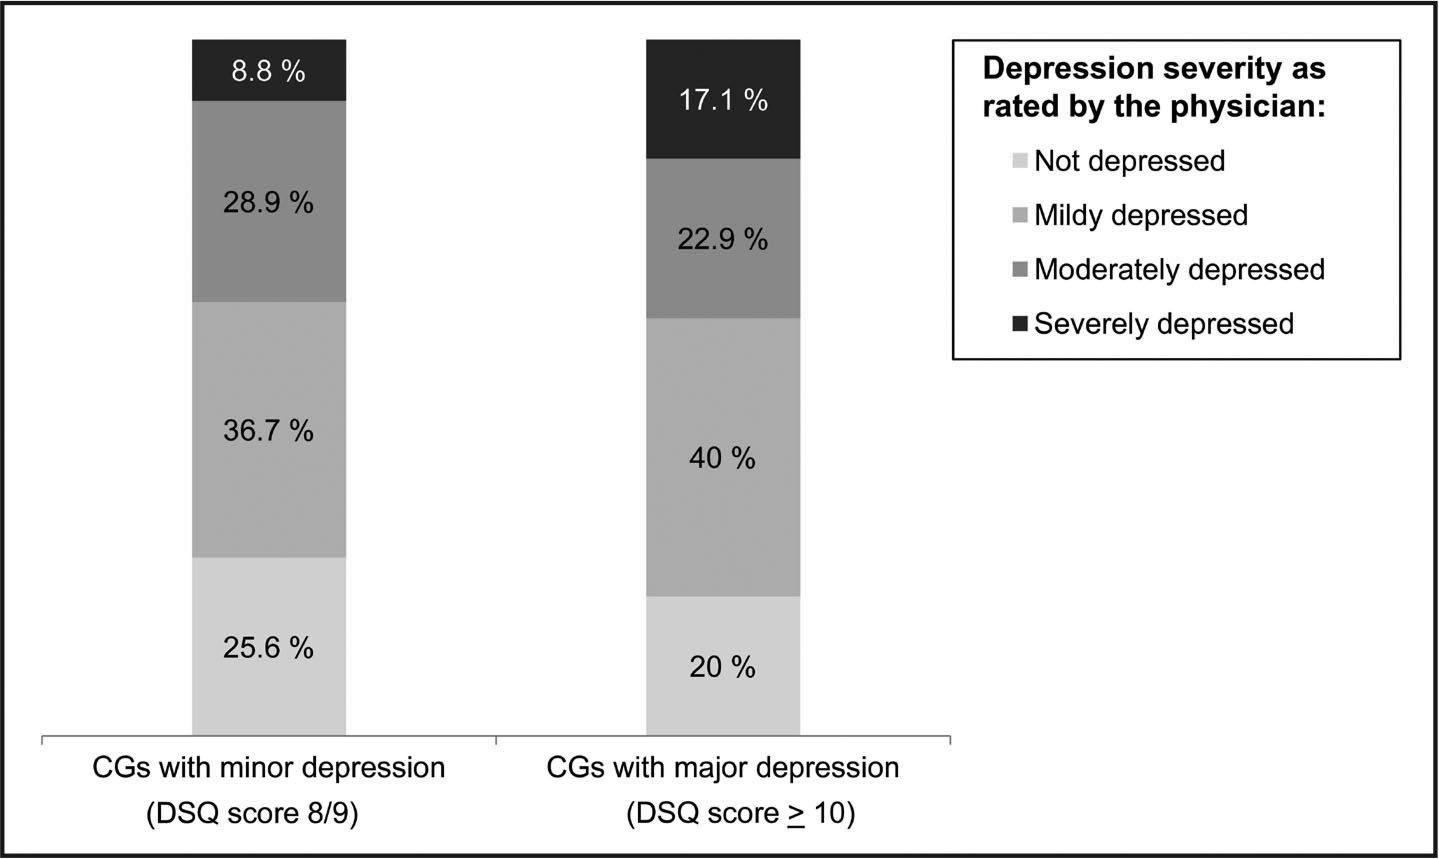 dementia major depressive disorder and geriatric The symptoms and signs of major depression in dementia attributing cognitive impairment to the dementia or the depressive disorder geriatric depression.